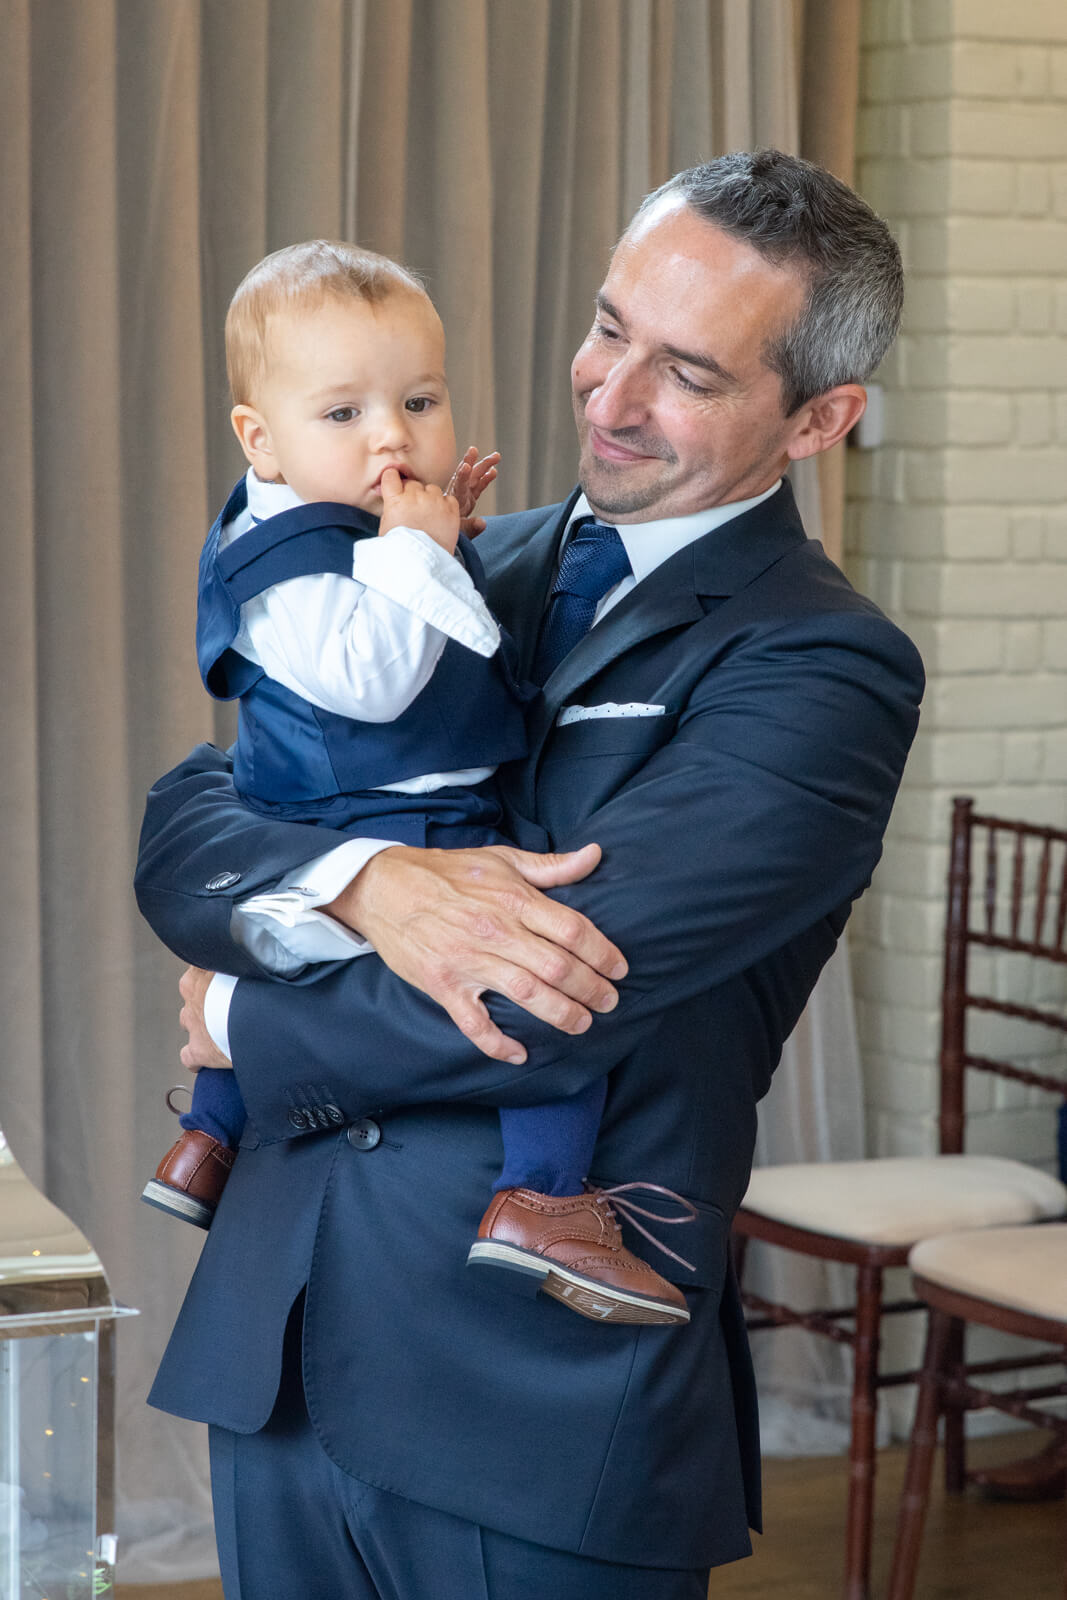 Groom waiting for the bride with baby in his arms